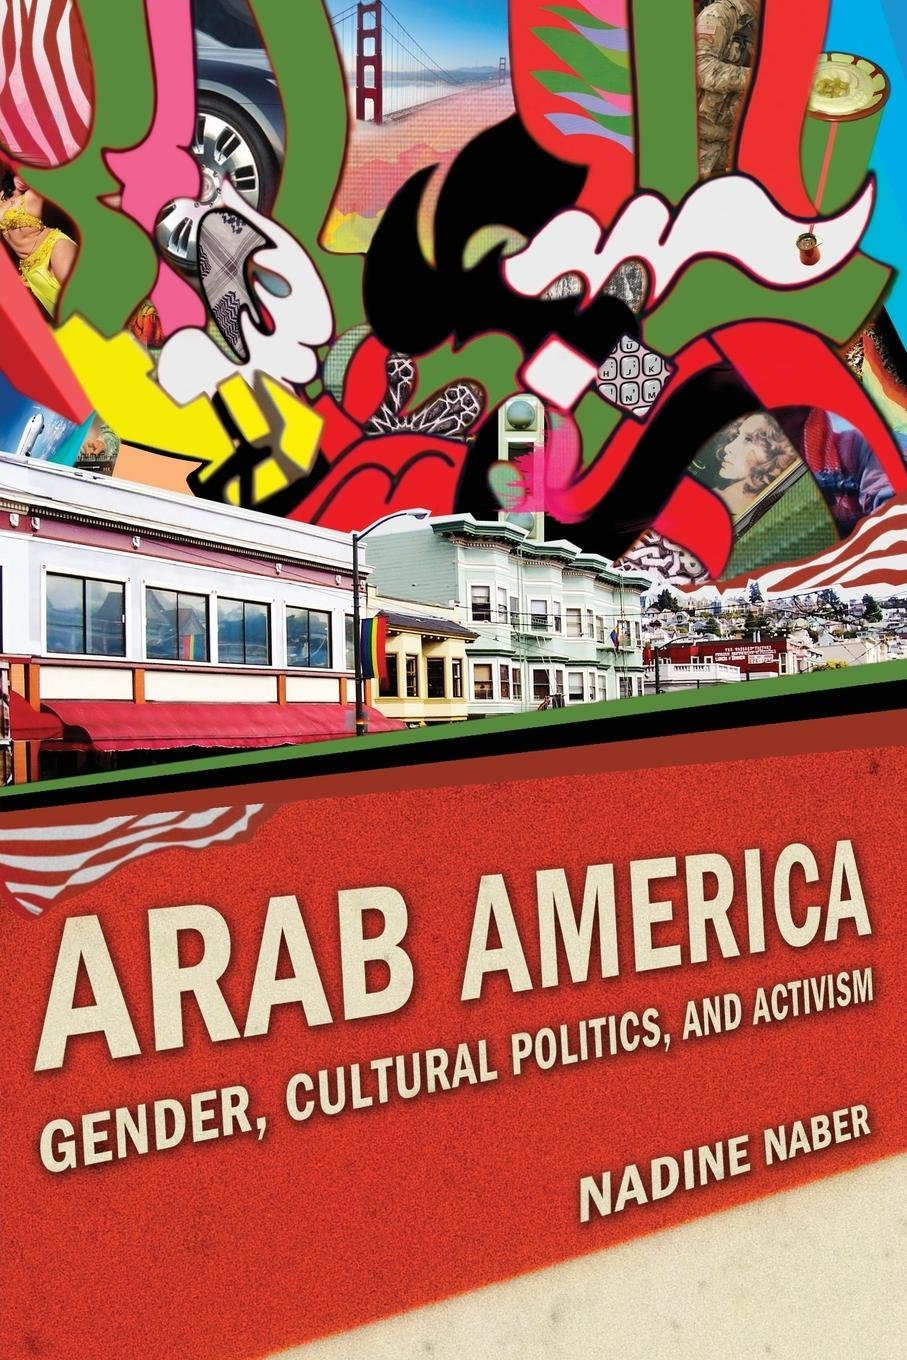 Download Arab America: Gender, Cultural Politics, and Activism (Nation of Nations) PDF